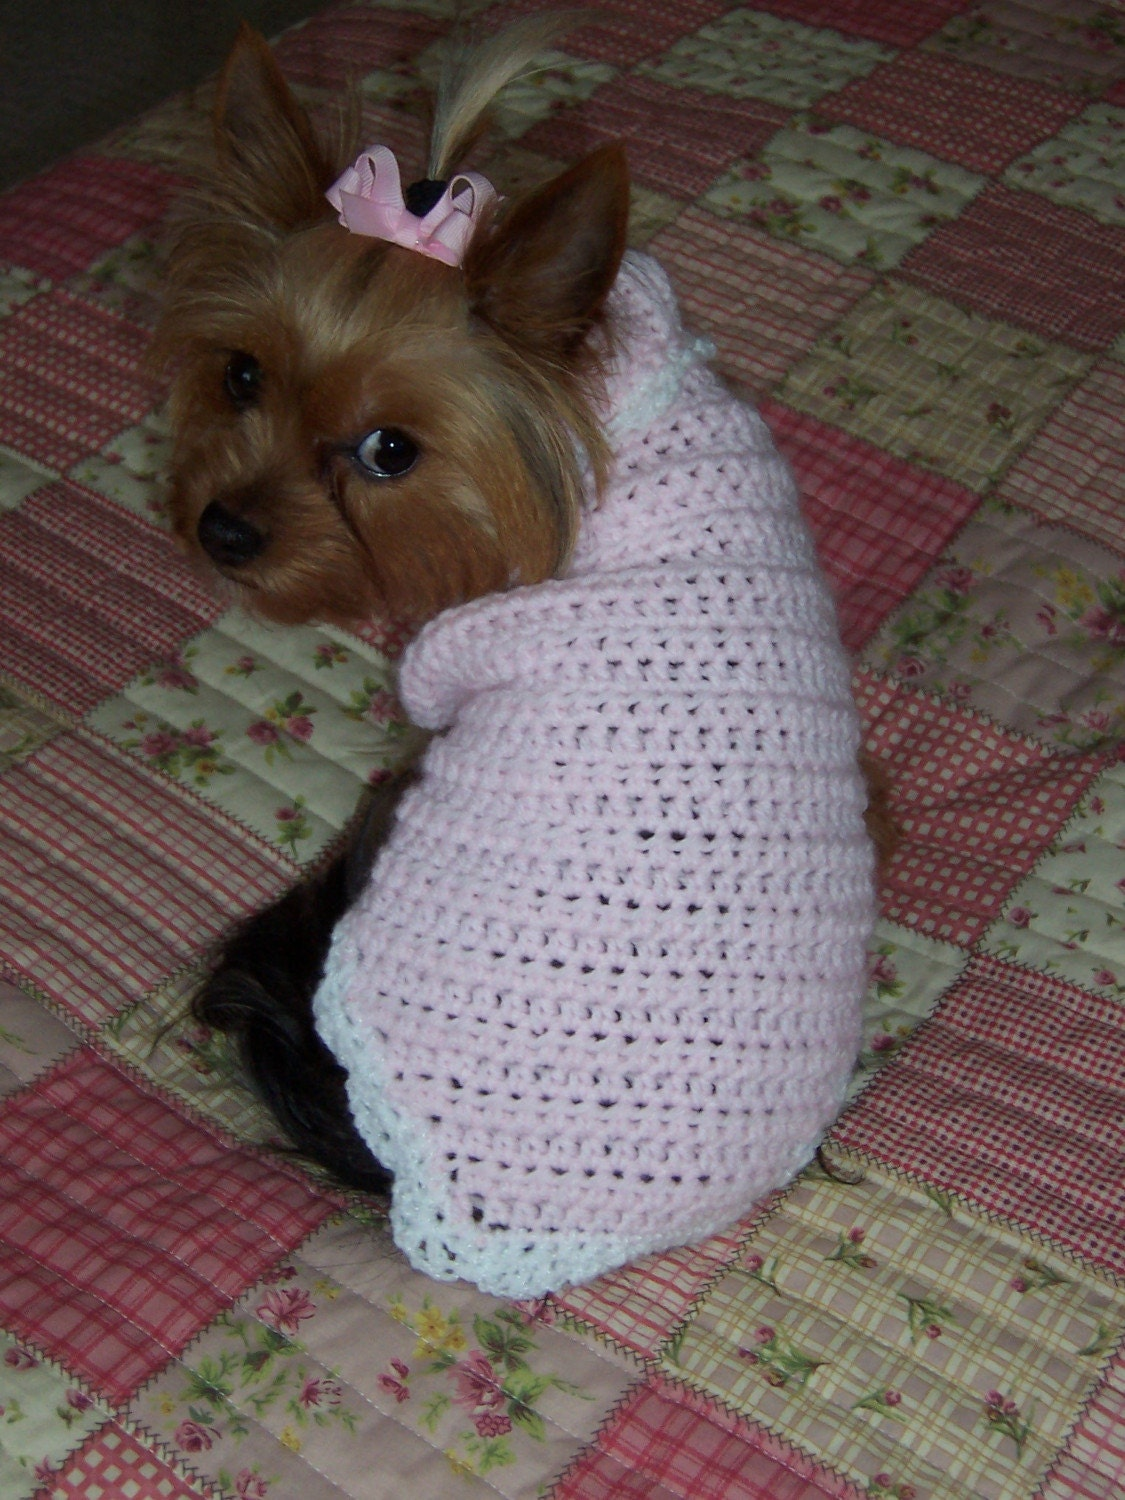 Free Crochet Pattern For Extra Small Dog Sweater : Crochet Dog Pattern Small Sweater How To Crochet Auto ...